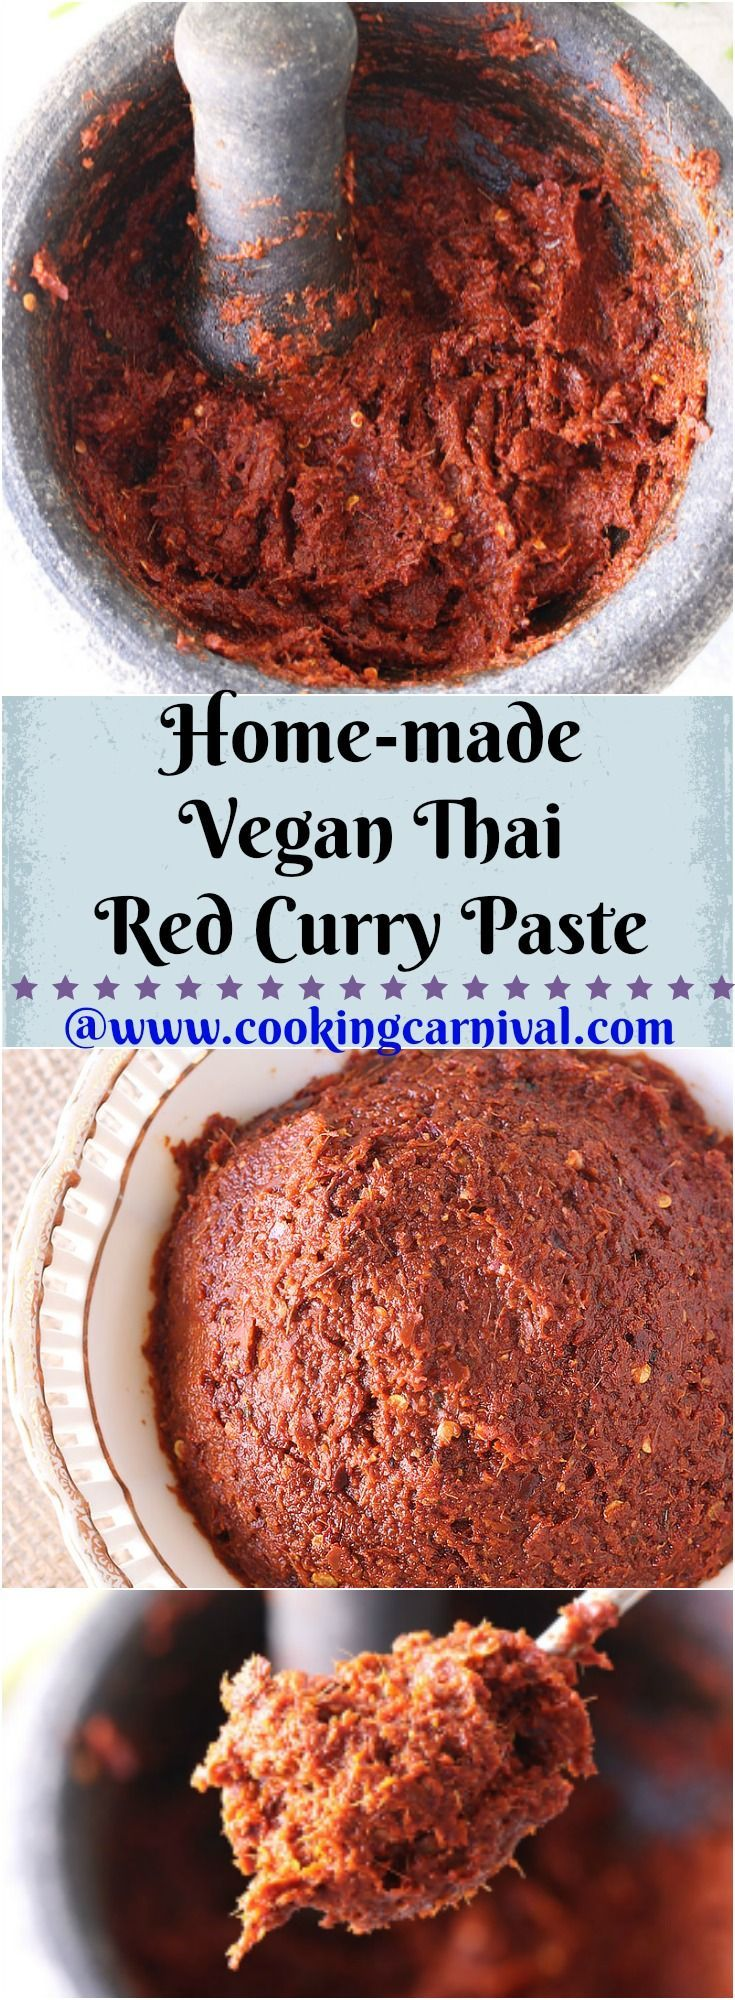 Homemade Thai Red Curry Paste is easy to make and better than store bought. This red Thai curry paste creates tastier curries, Thai soups and they are much healthier too. This curry paste is so versatile. You can make soups, pasta, noodles or can east with Indian fritters, Idli Spread it on Dosa or Chillas. #thaifood #currypaste #Homemade #Vegan #Noshrimpcurrypaste #vegetarianrecipes #Spicy #Cookingcarnival #Thaicurrypaste